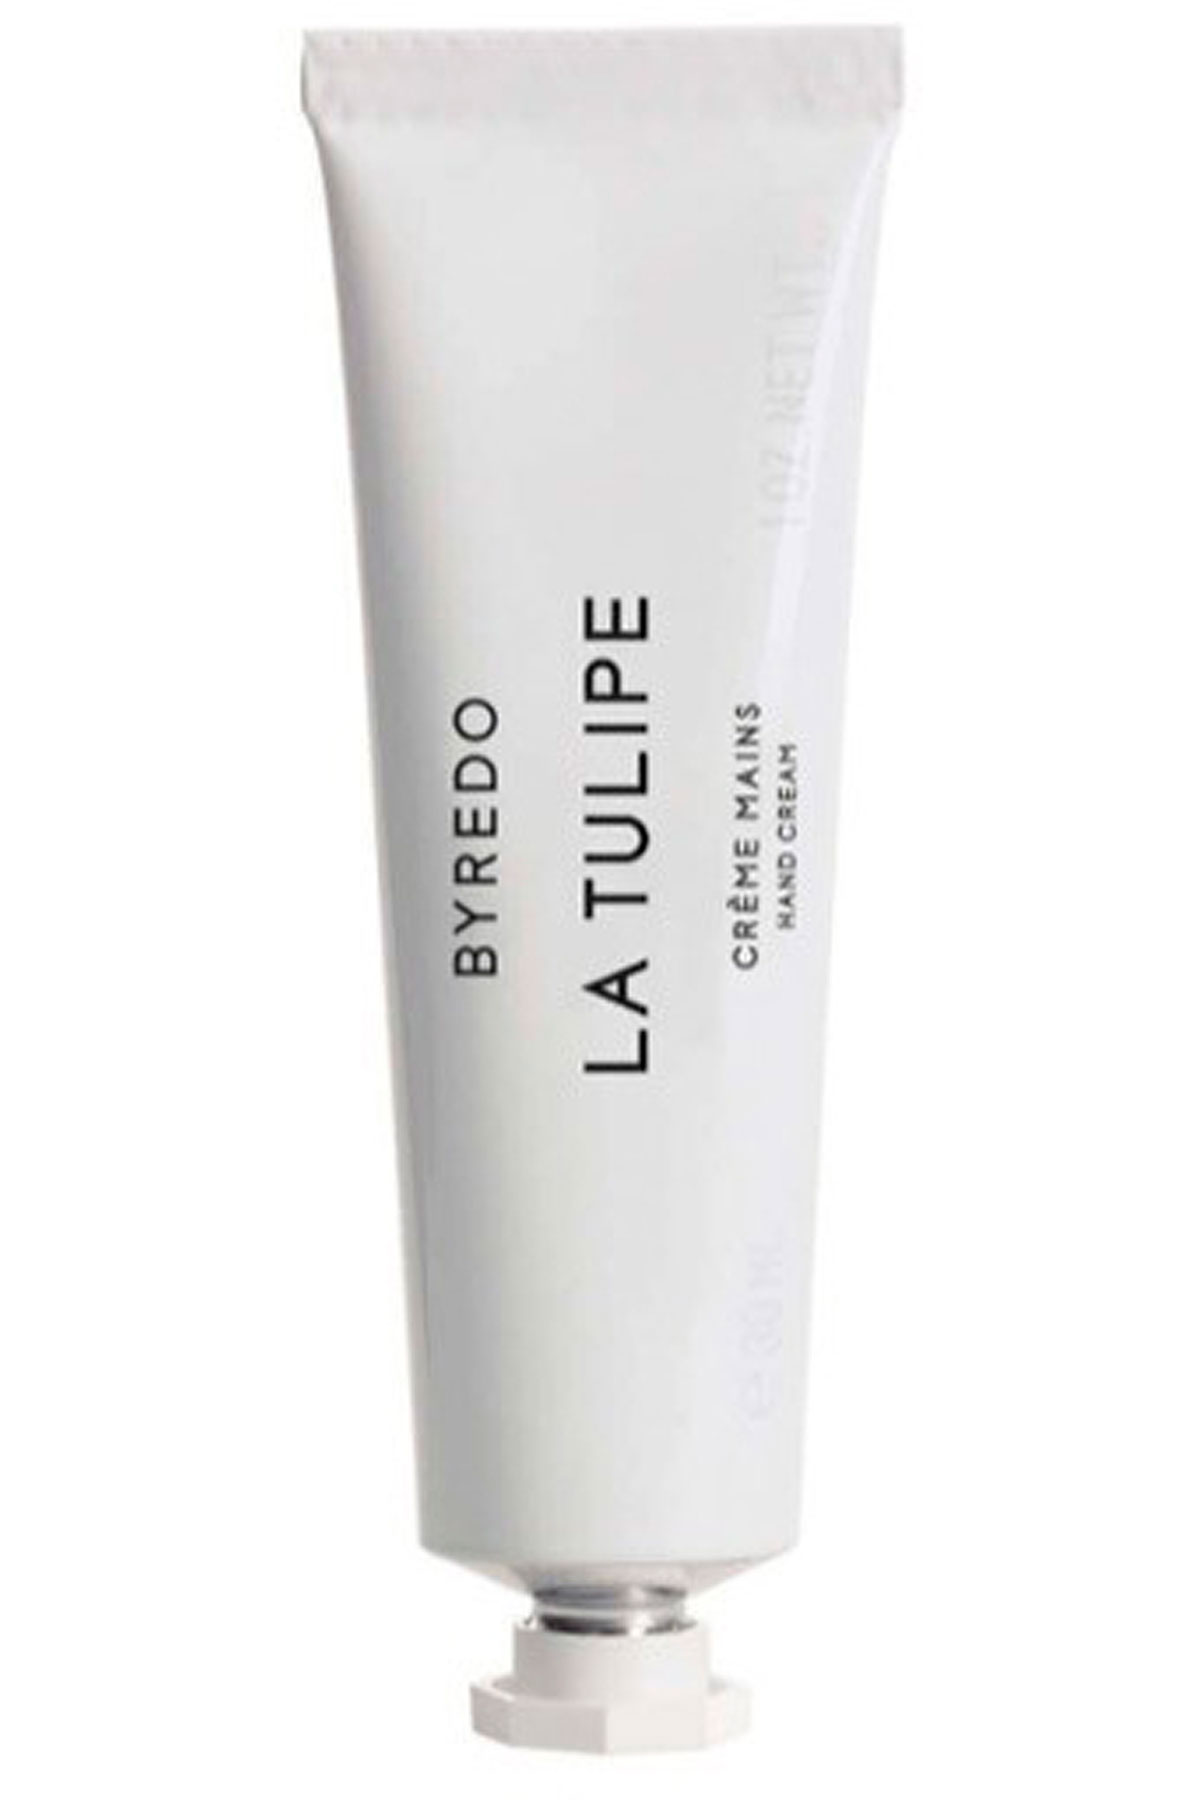 Byredo Beauty for Women, La Tulipe - Hand Cream - 30 Ml, 2019, 30 ml